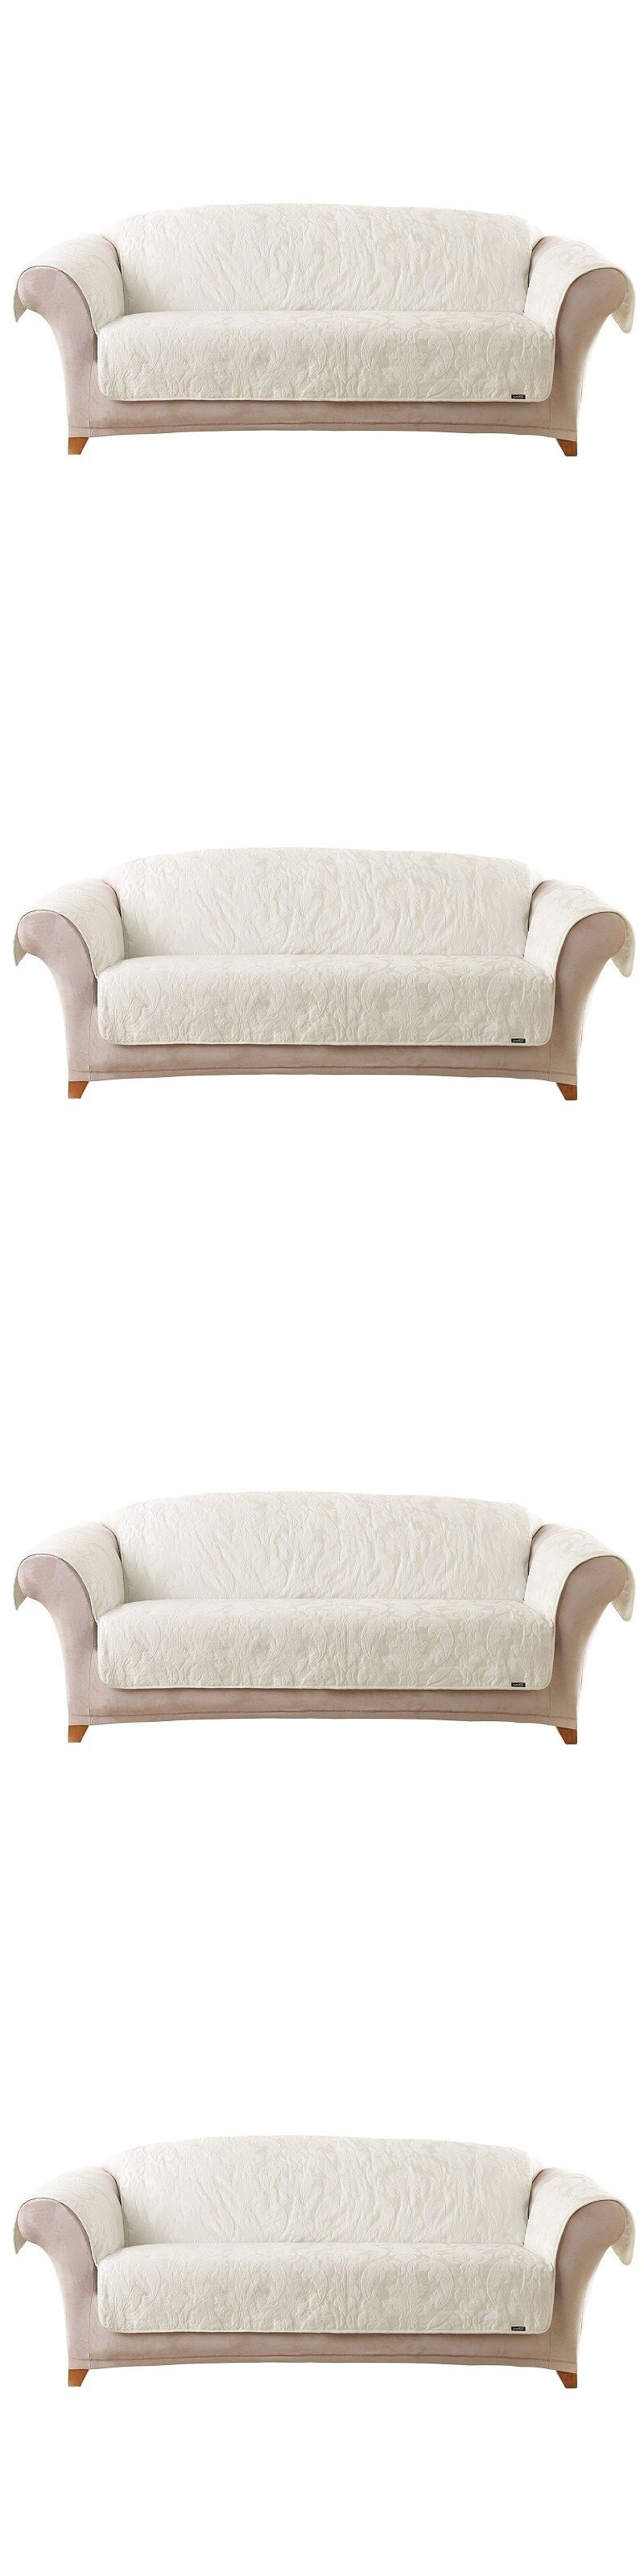 Slipcovers Sure Fit Sofa Cover Cat Furniture Couch